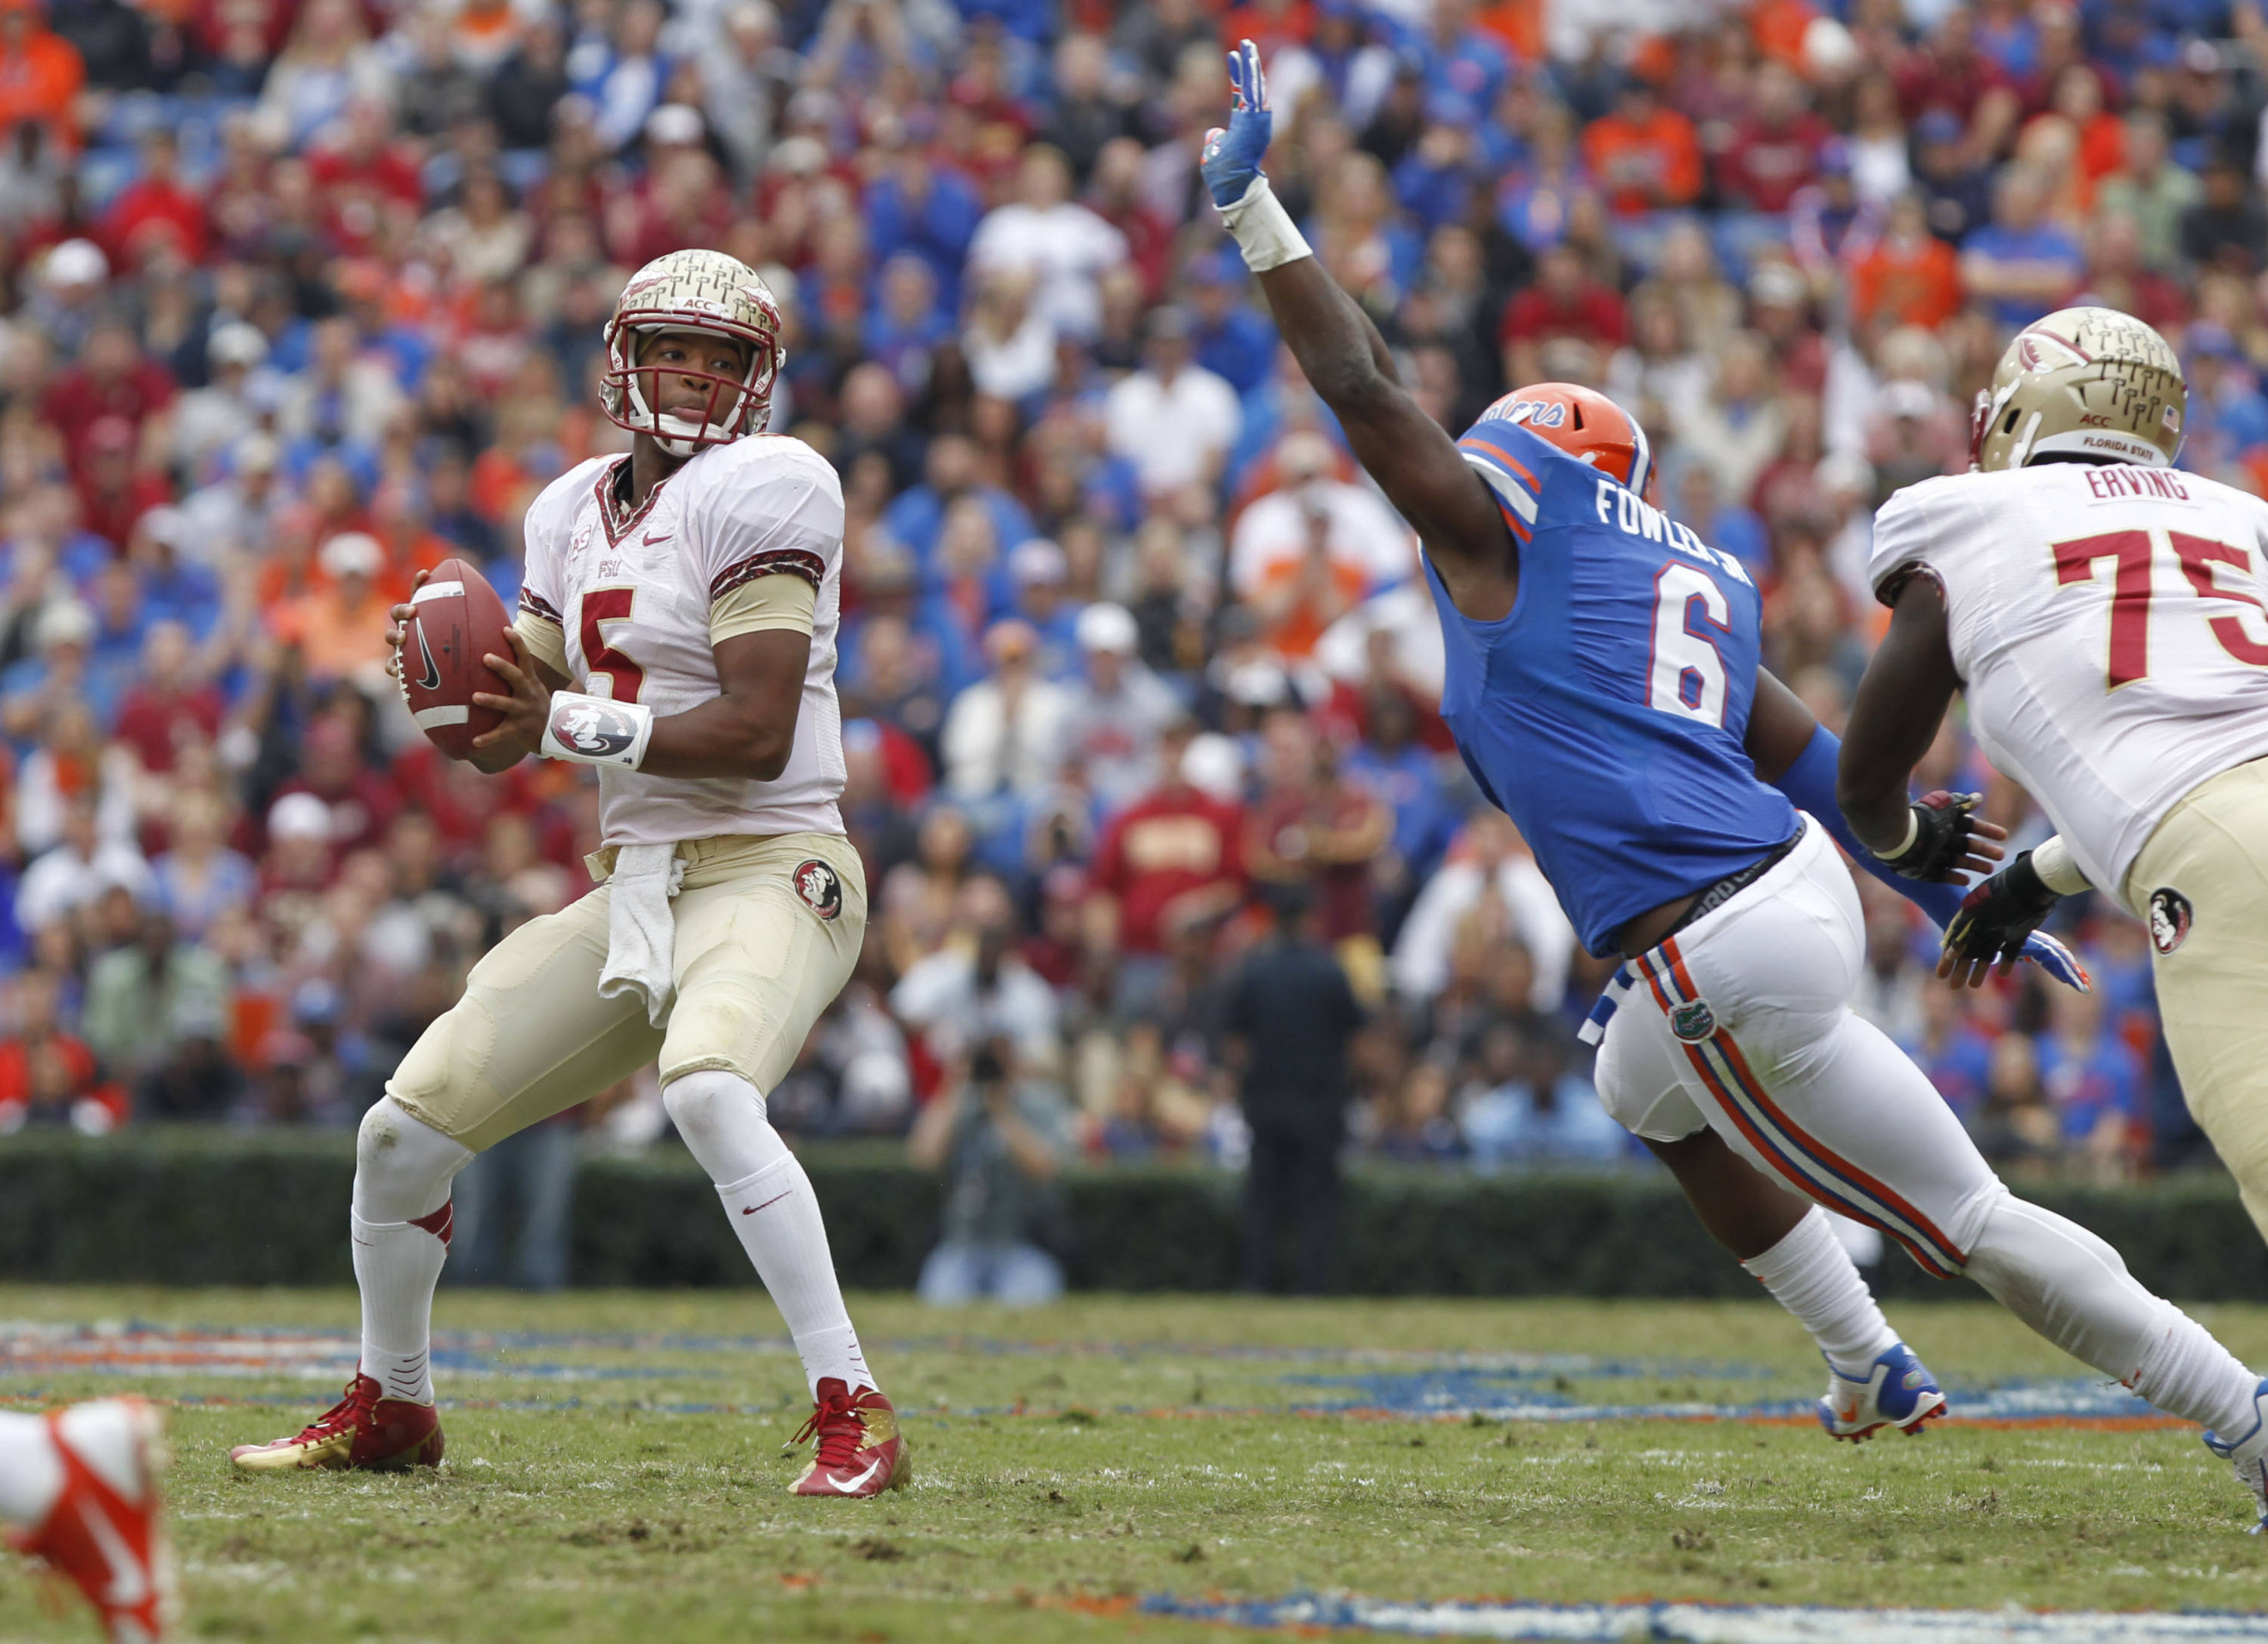 Jameis Winston (5) drops back as Florida Gators defensive end Dante Fowler Jr. (6) defends. Mandatory Credit: Kim Klement-USA TODAY Sports